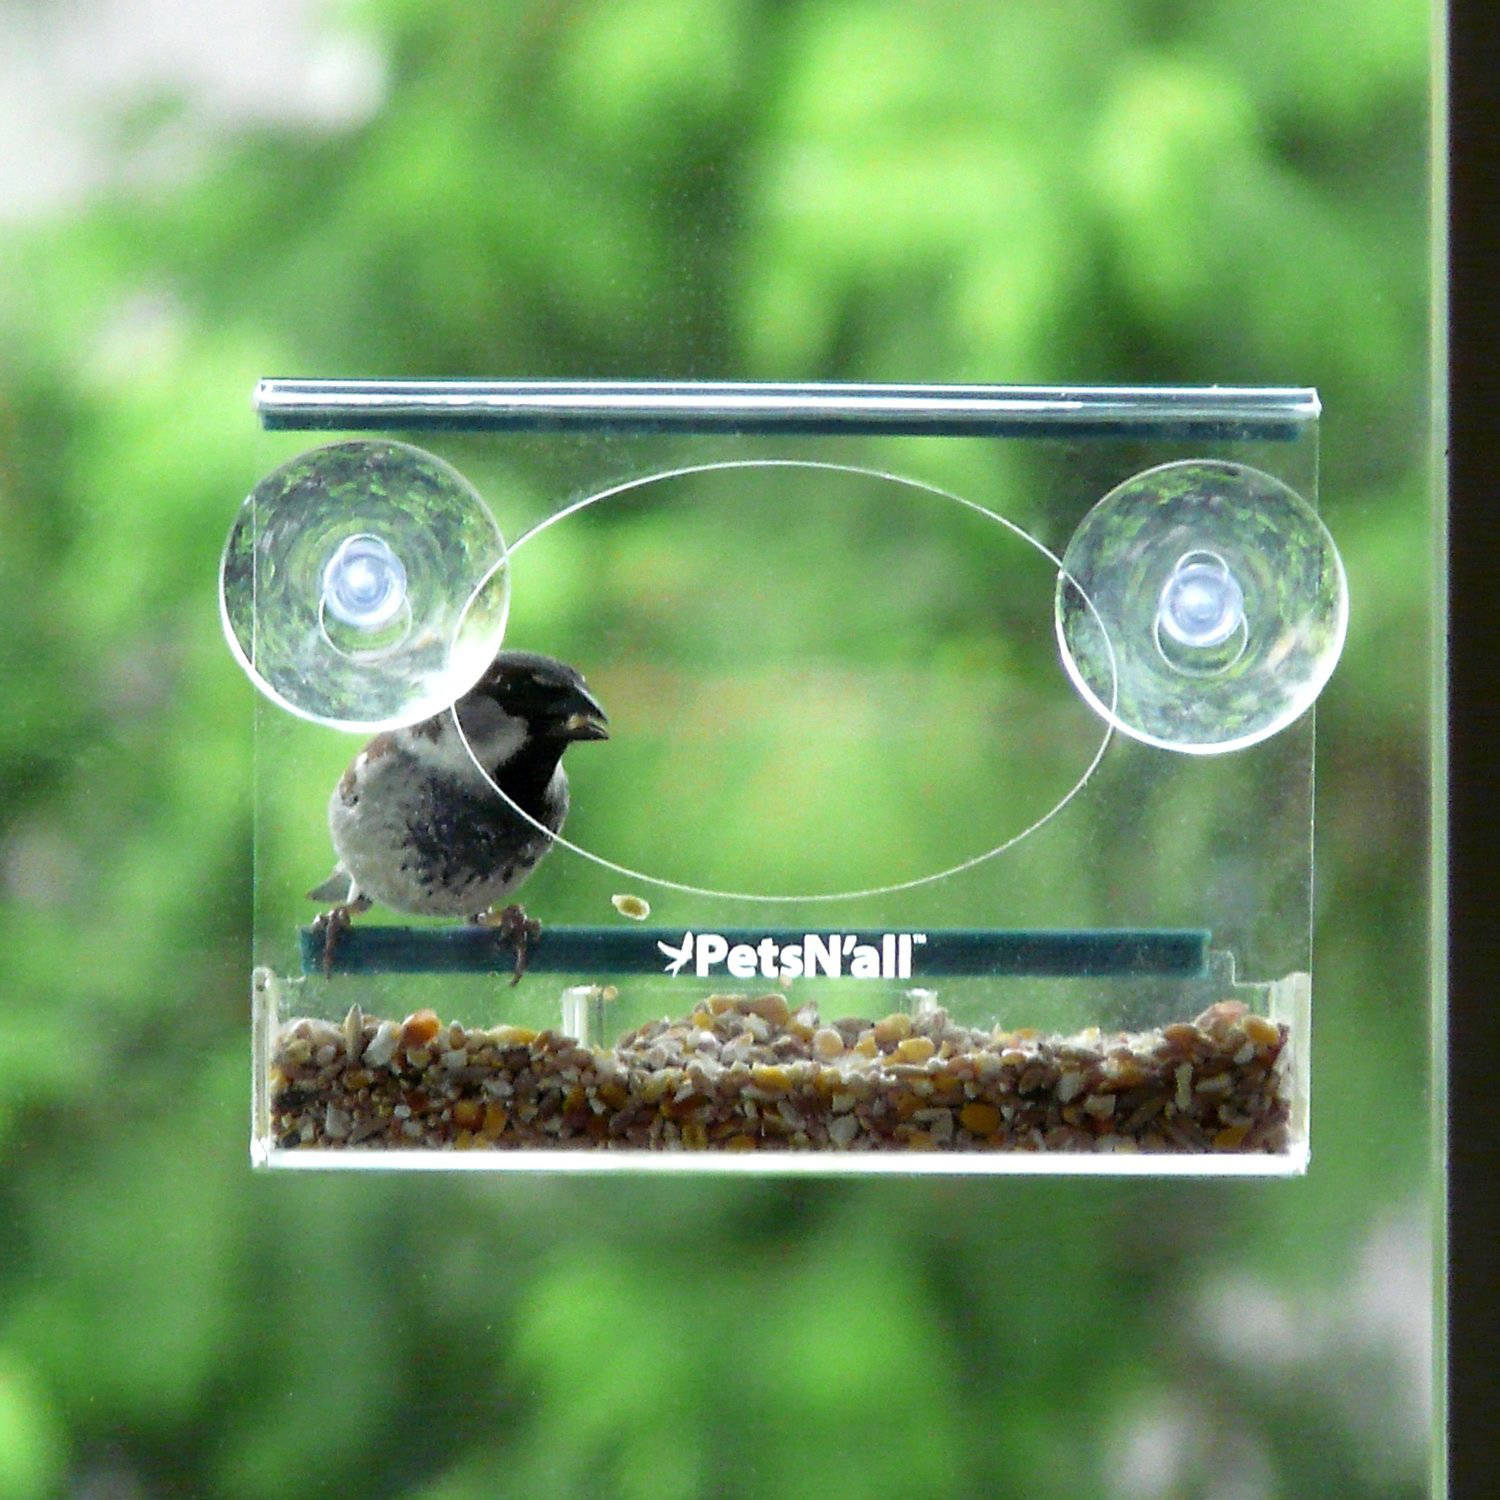 PetsN'all Chickadee, Finch, Small Bird Window Birdfeeder by Aspectek